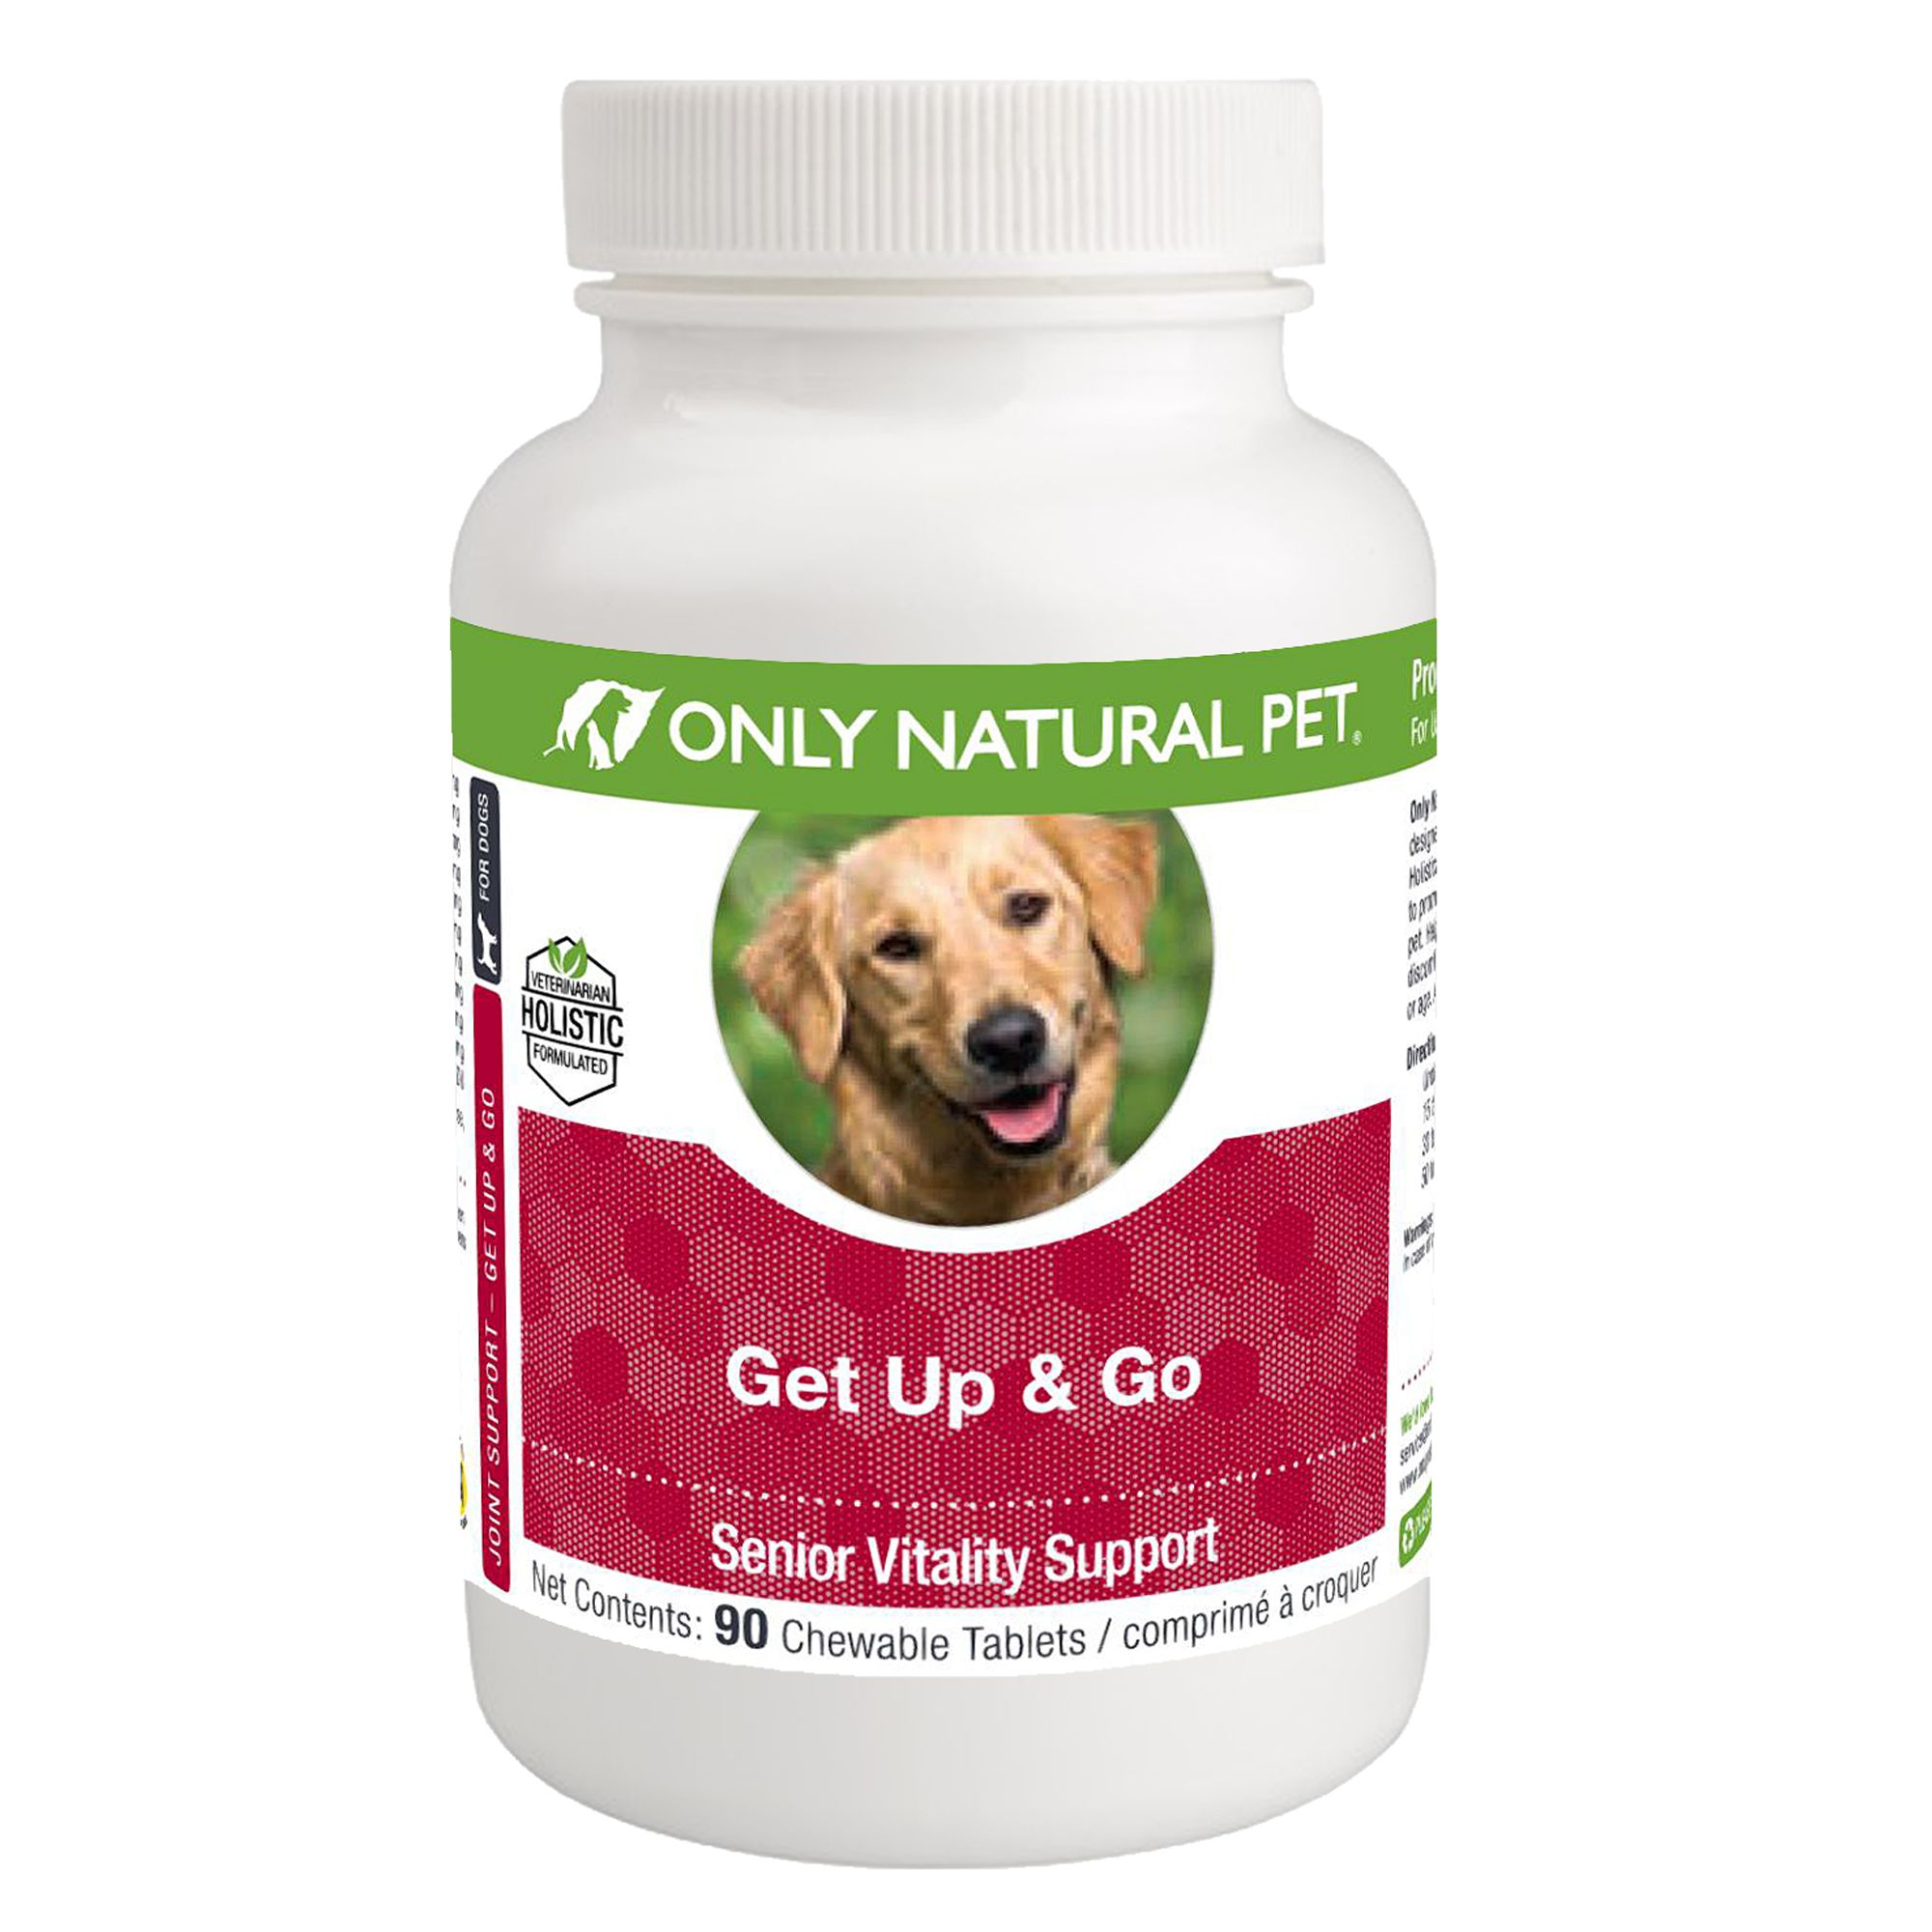 Petsmart Animals Pet Supplies Gnc Selenium 50 100 Tablet Only Natural Get Up And Go Joint Support Chewable